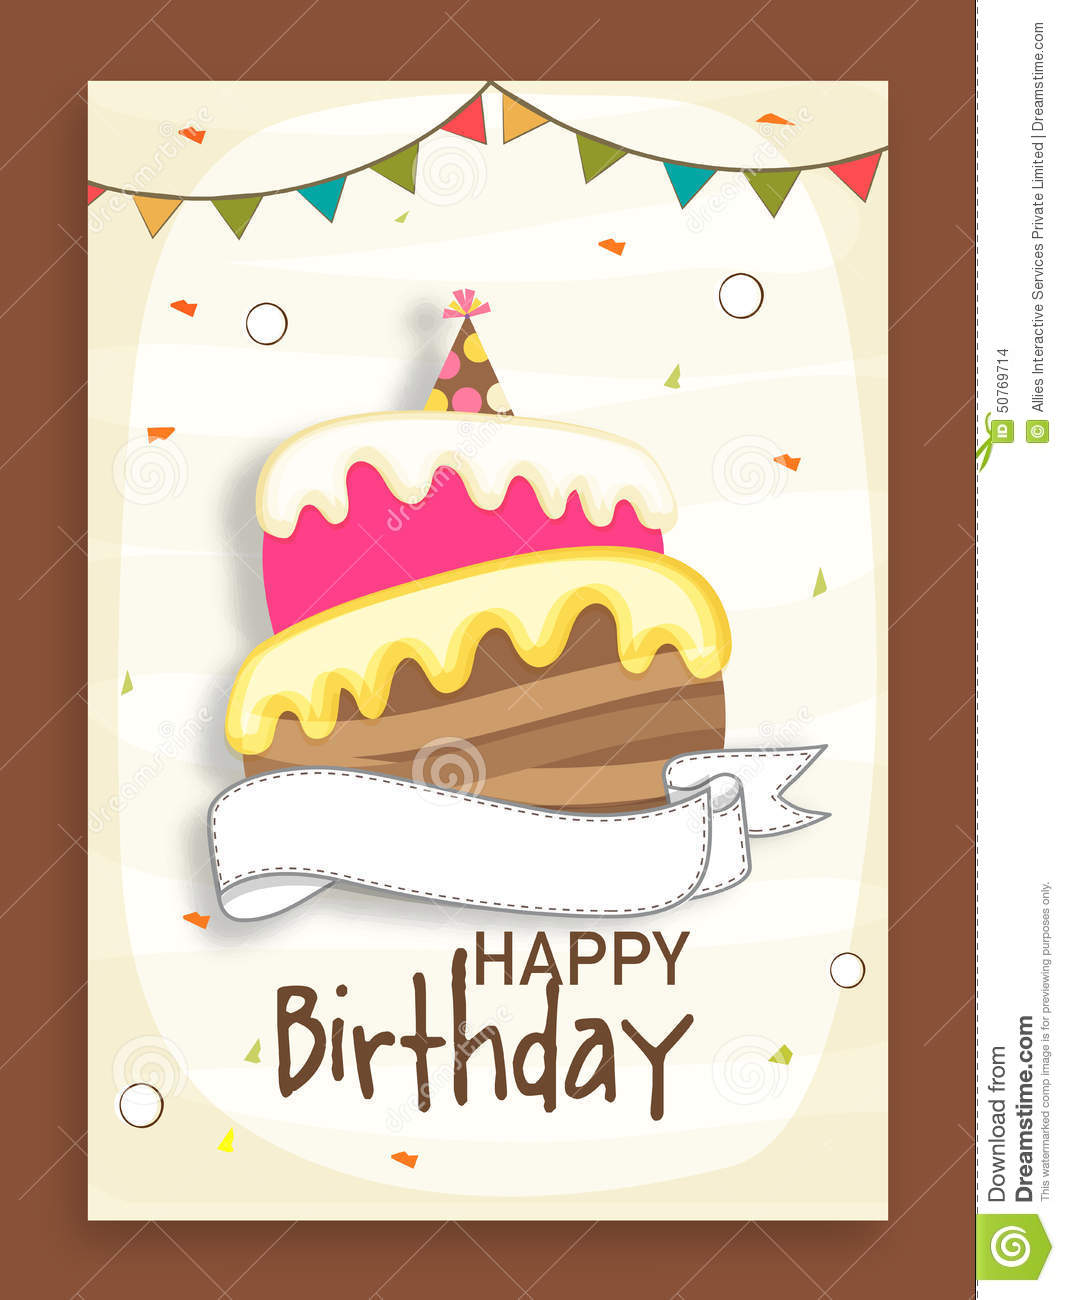 Birthday party invitation card design image inspiration of cake birthday party celebration invitation card design stock illustration stopboris Image collections